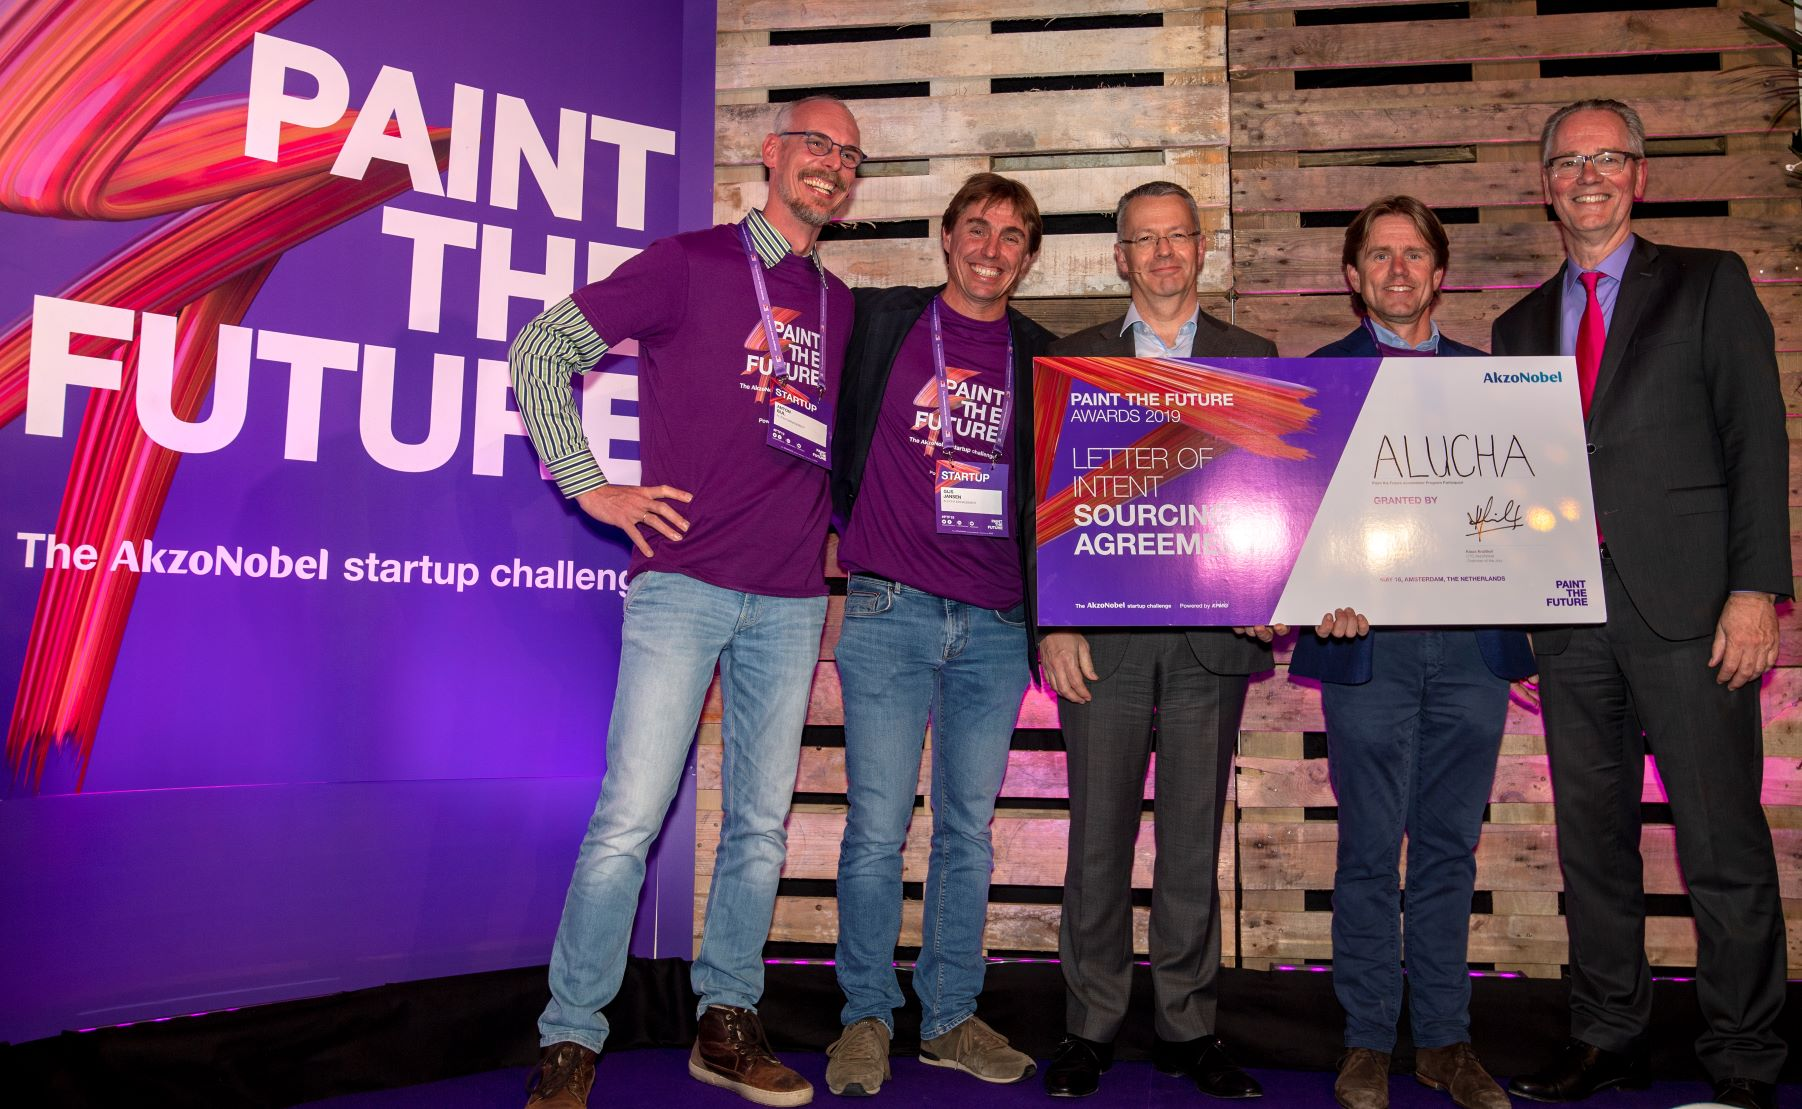 IPKW'er Alucha wint de Paint the Future Award